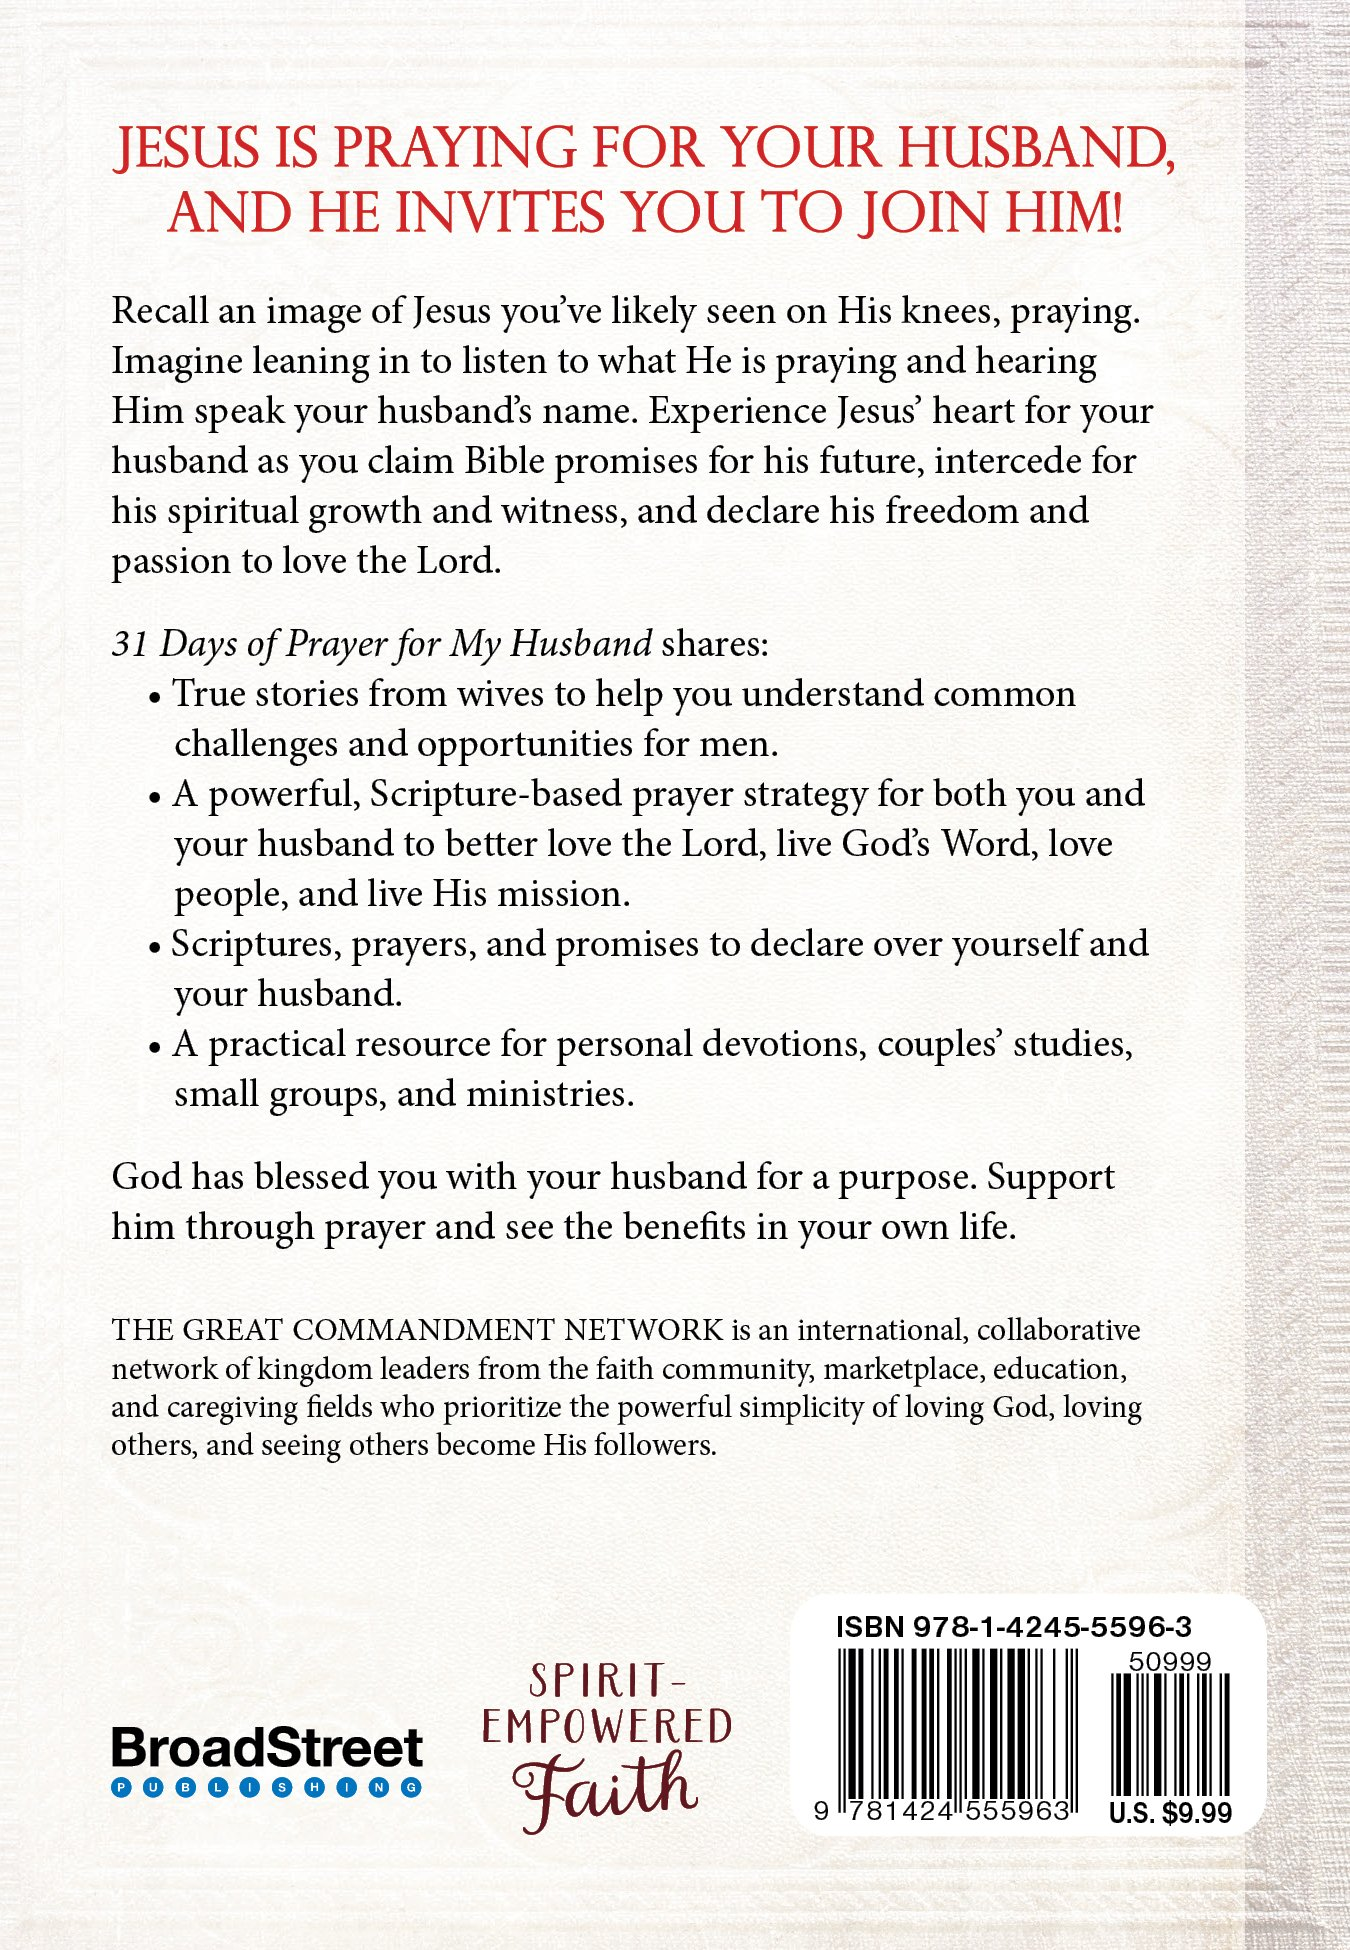 31 Days of Prayer for my Husband: The Great Commandment Network:  9781424555963: Amazon.com: Books